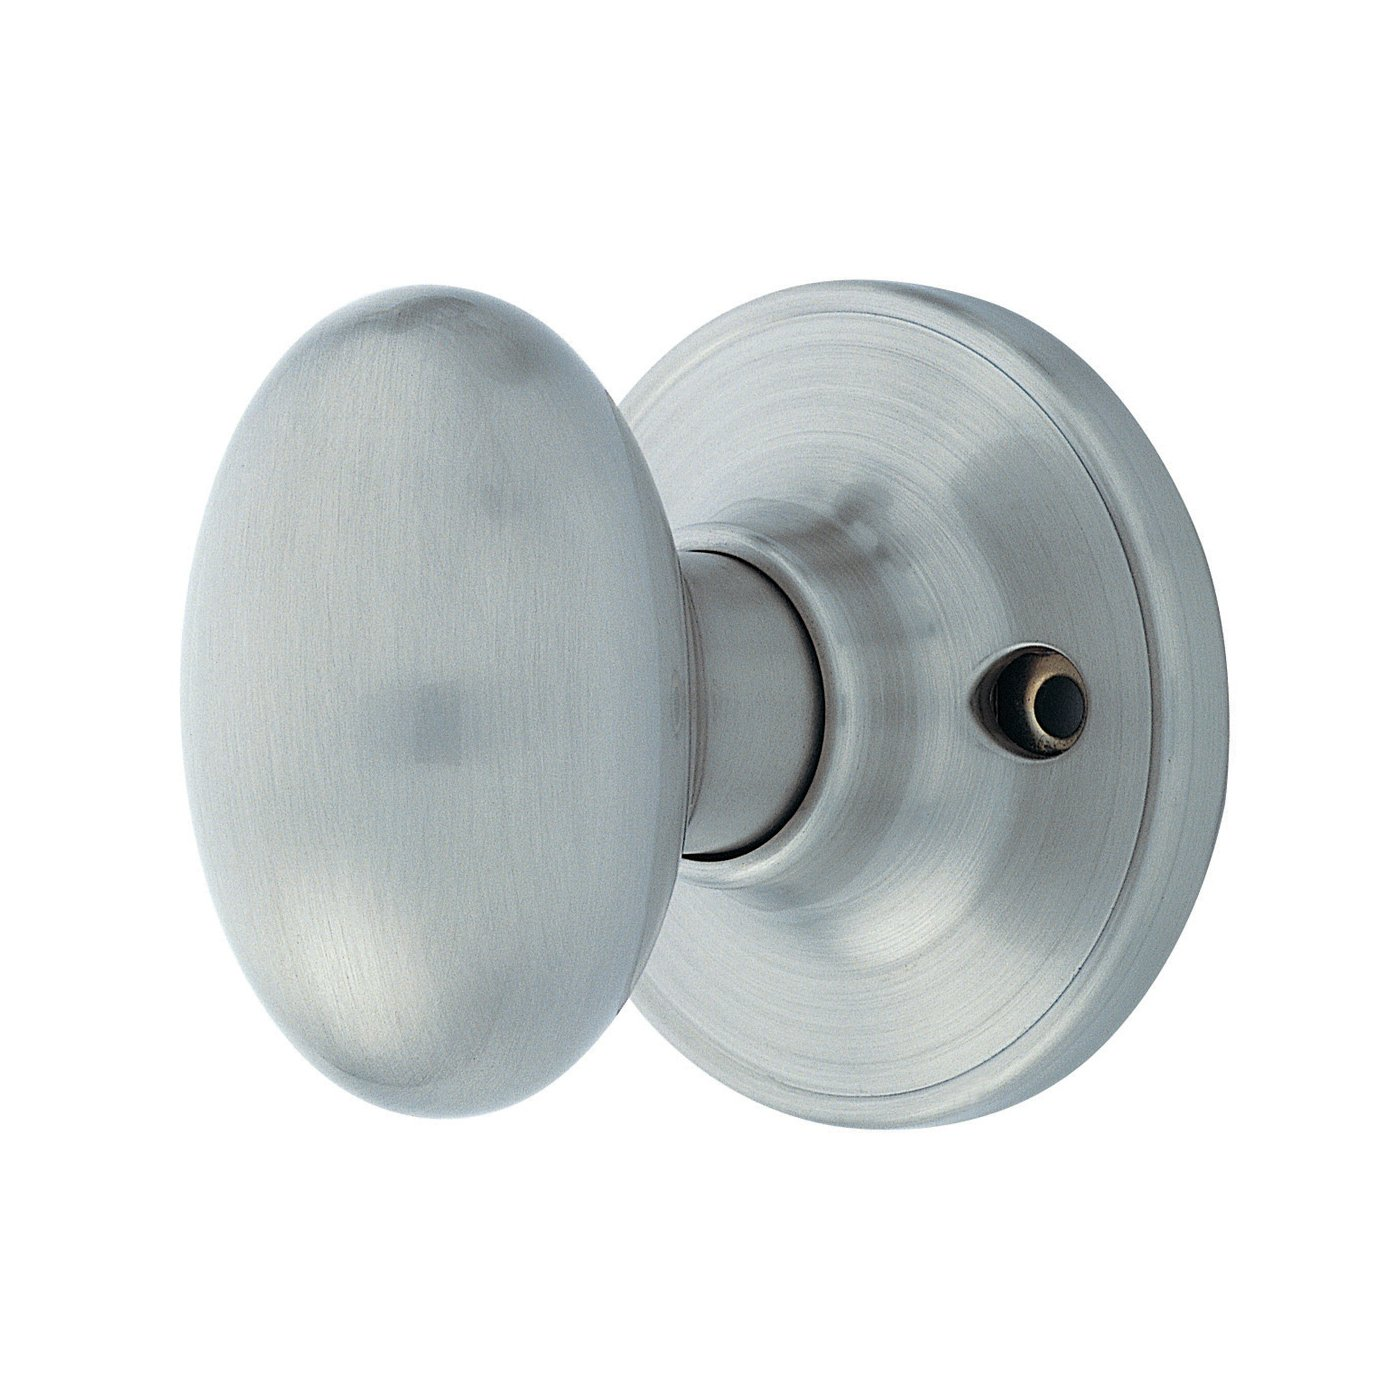 doors and knobs hardware photo - 12